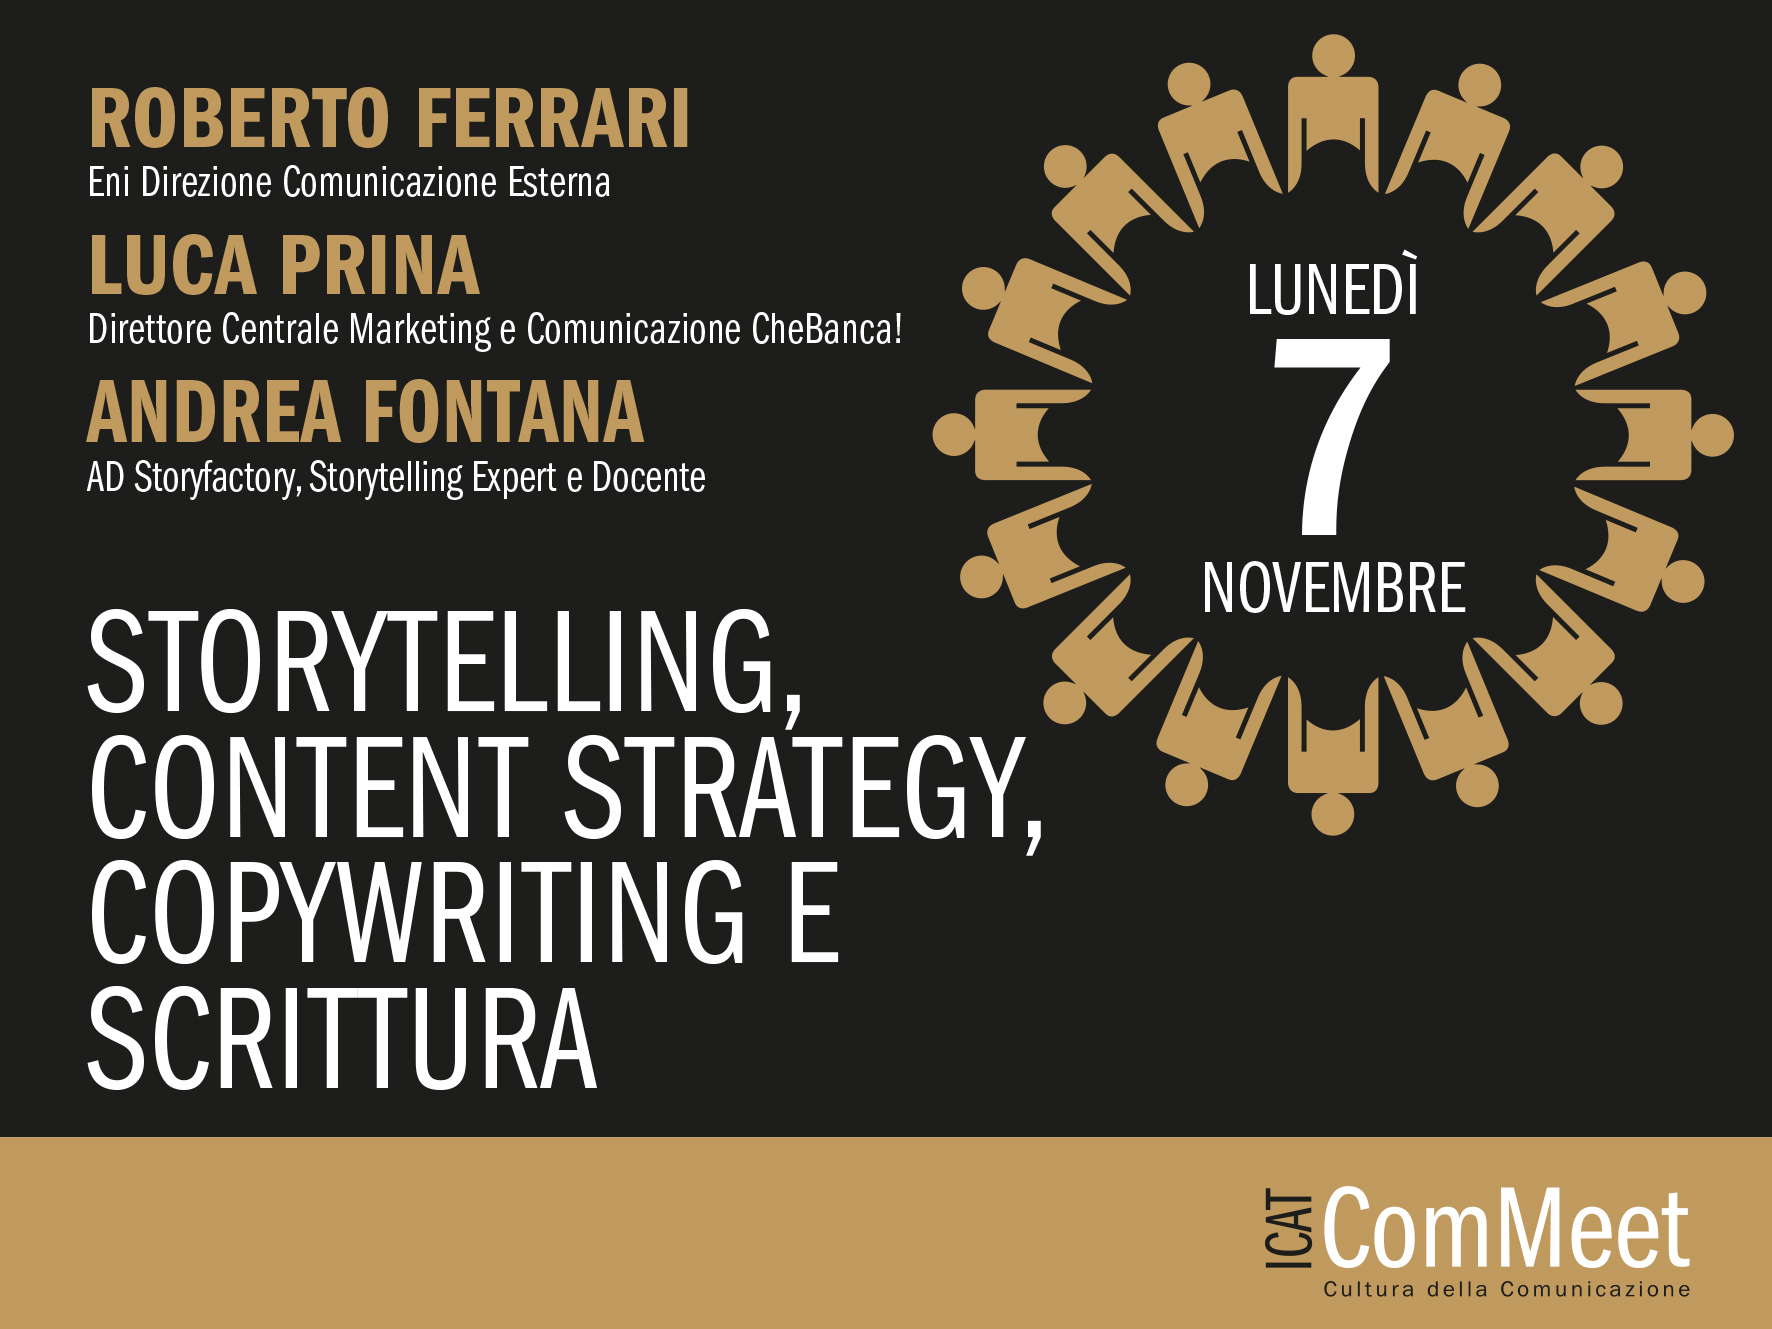 Lo Storytelling protagonista dell'evento Icat ComMeet di novembre